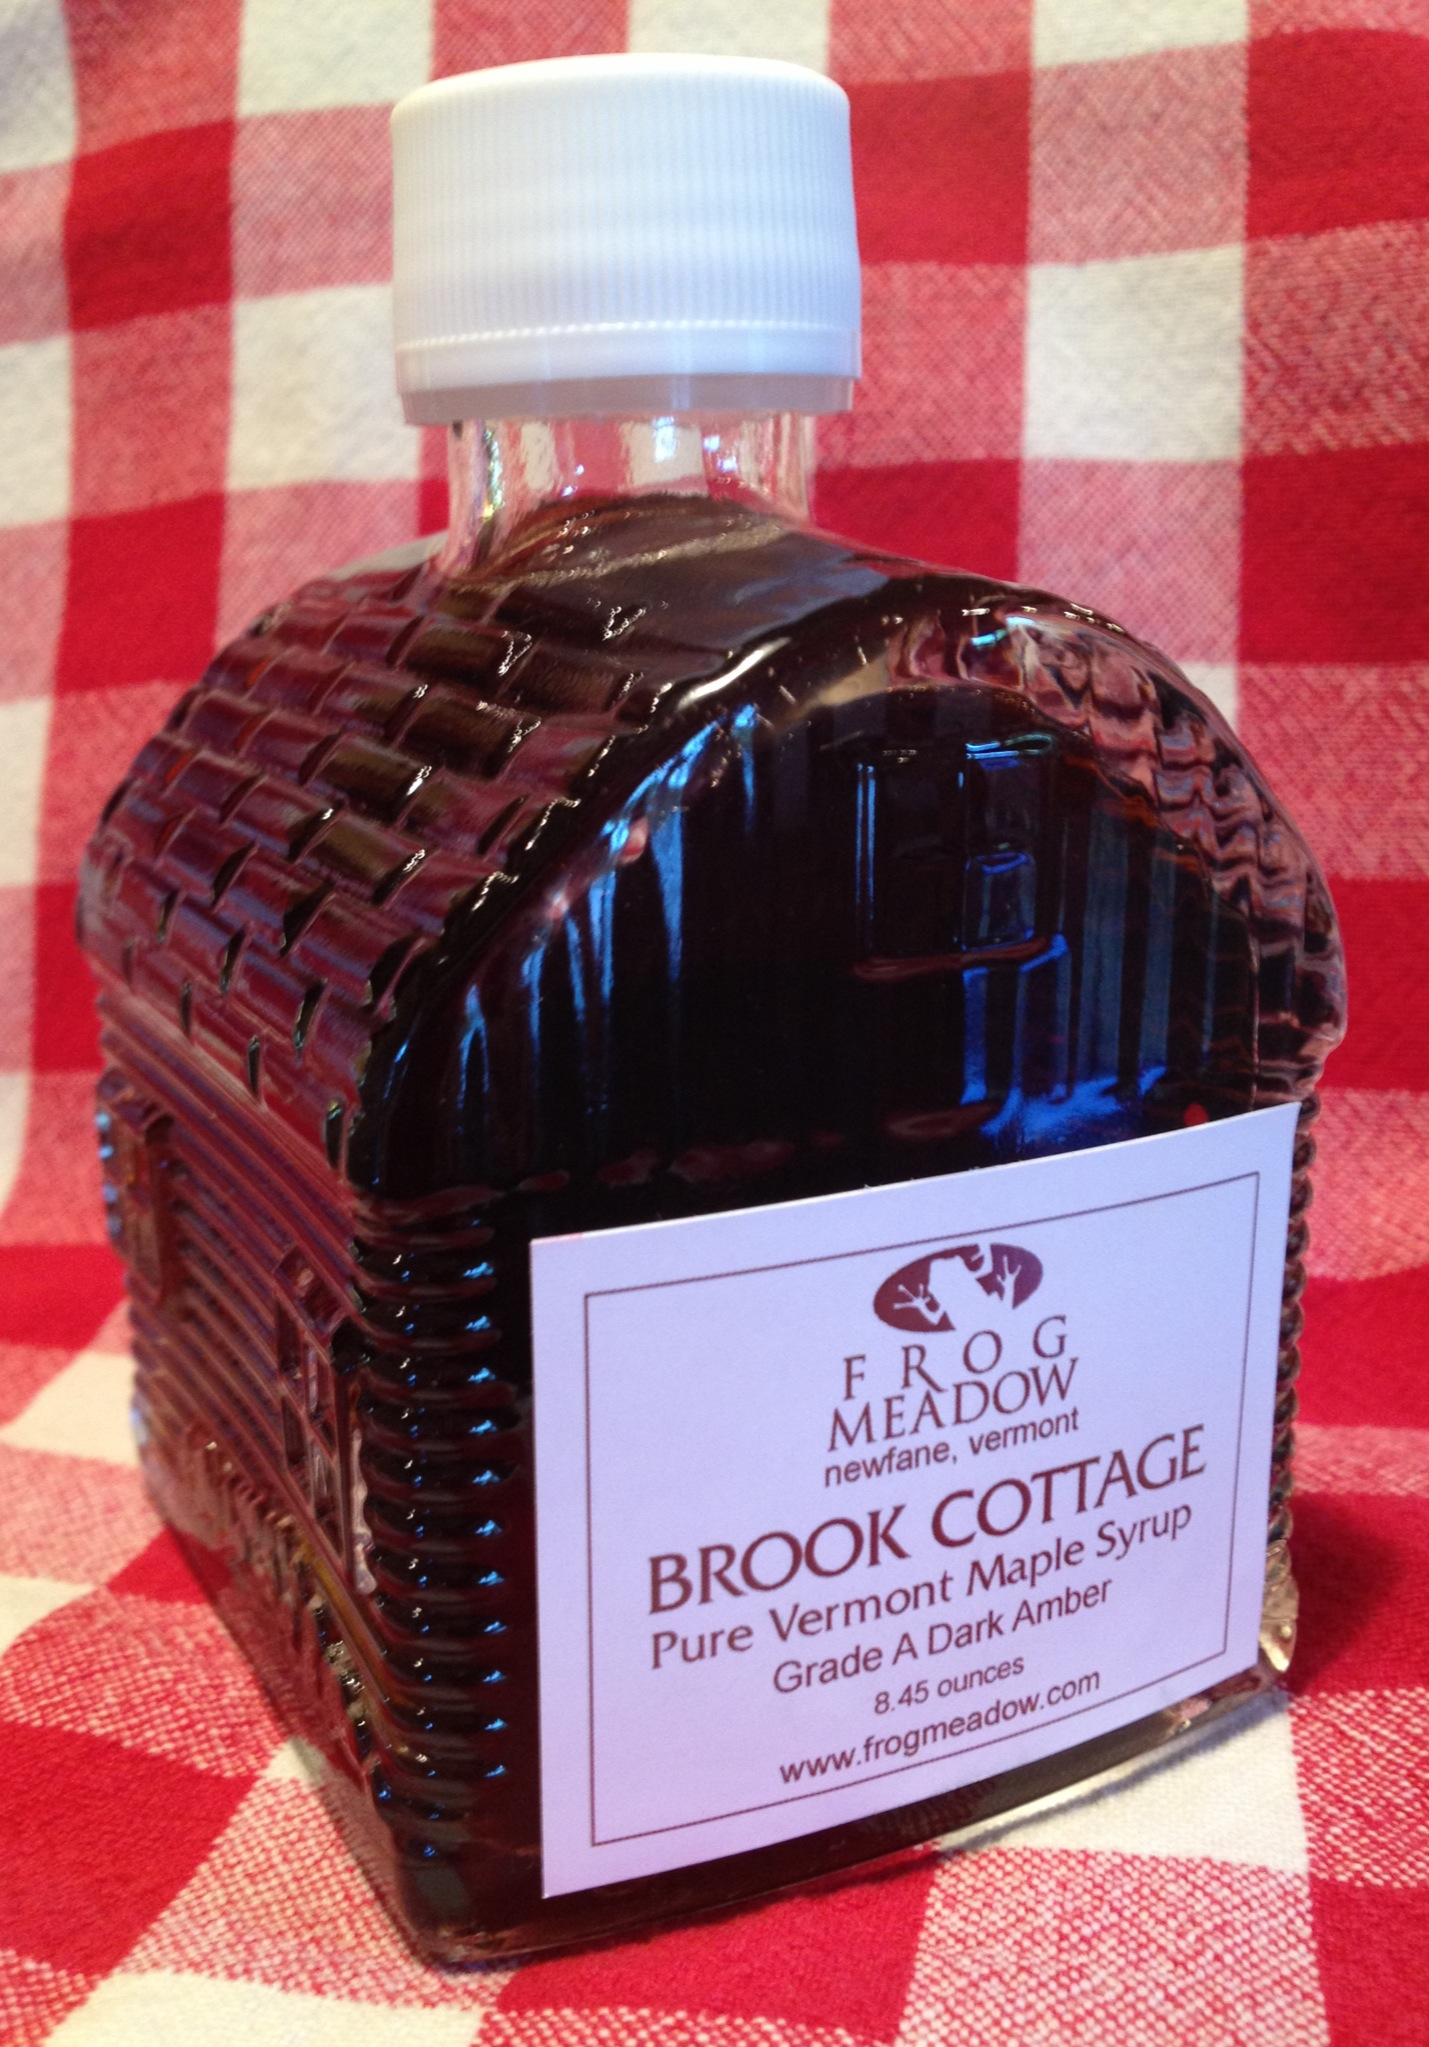 Brook Cottage Maple Syrup